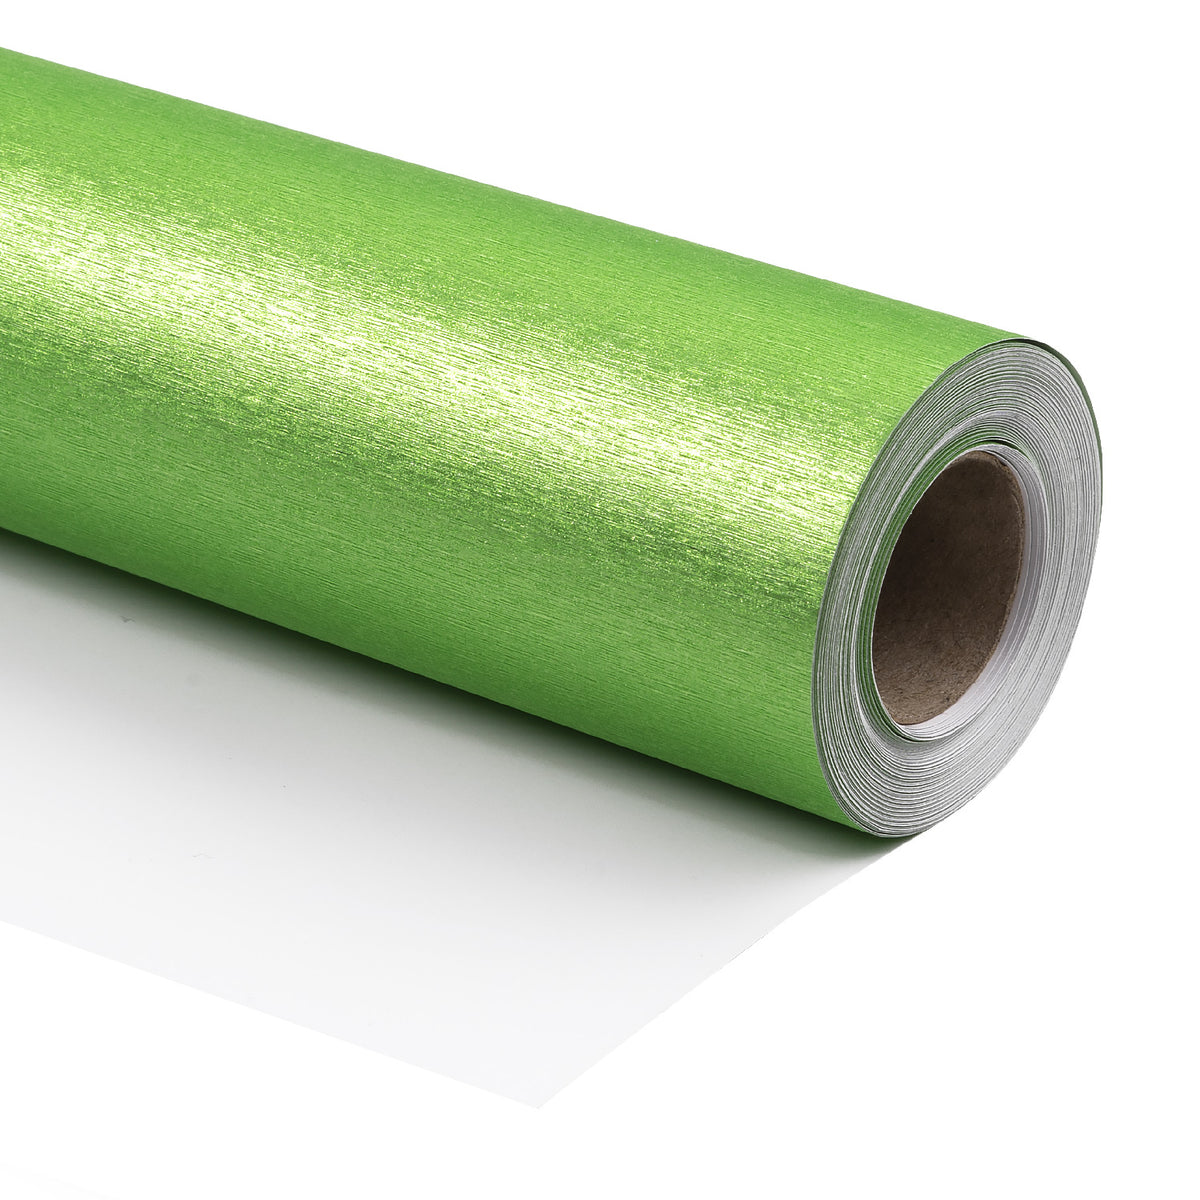 Wrapaholic-gift-wrap-roll-brush-metal-green